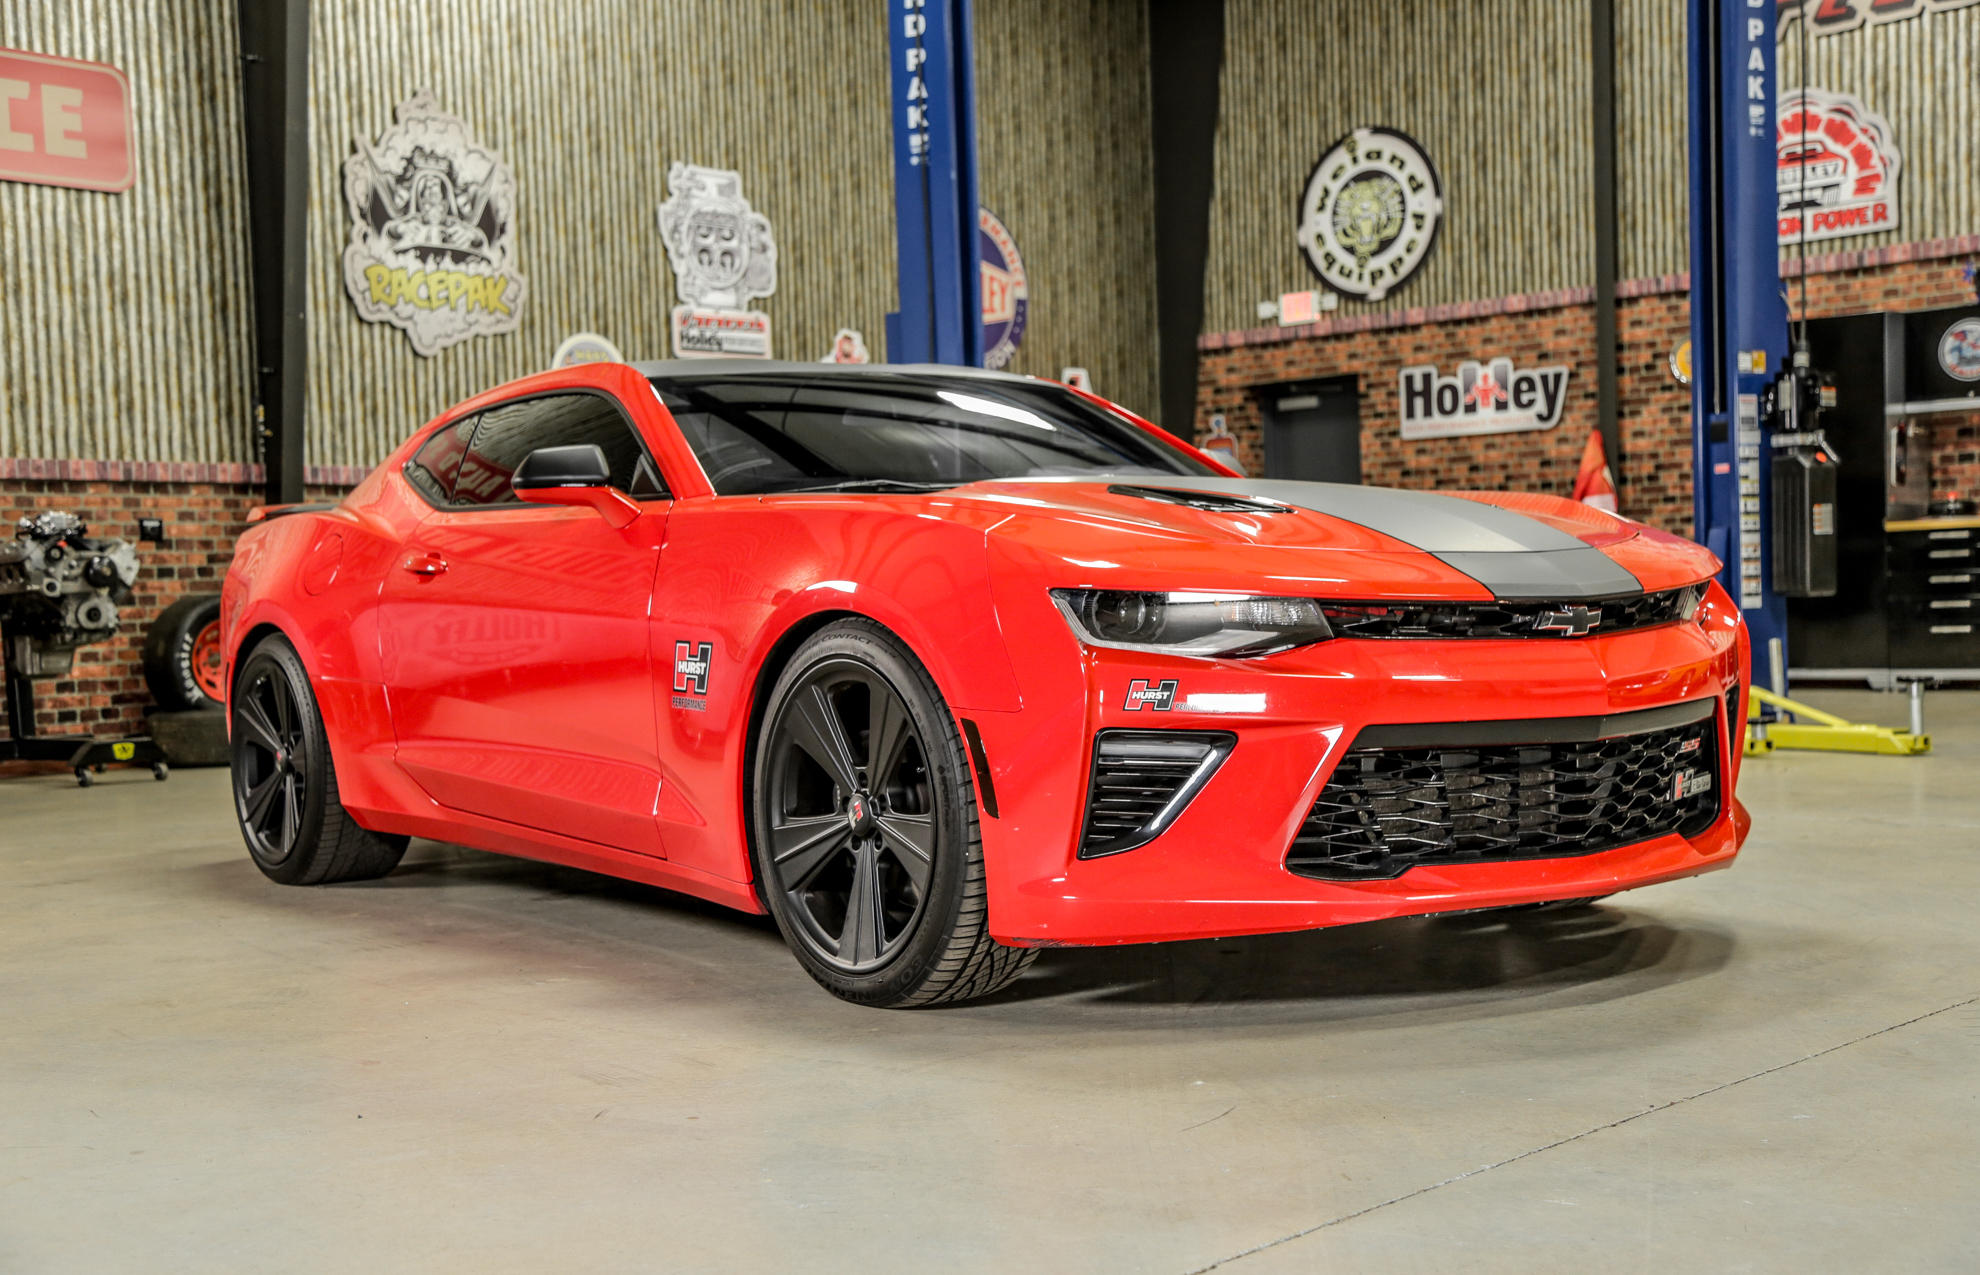 You Can Own THE Hurst Camaro! Not A Hurst Elite Series Camaro, But The One They Developed The Package And Parts With!